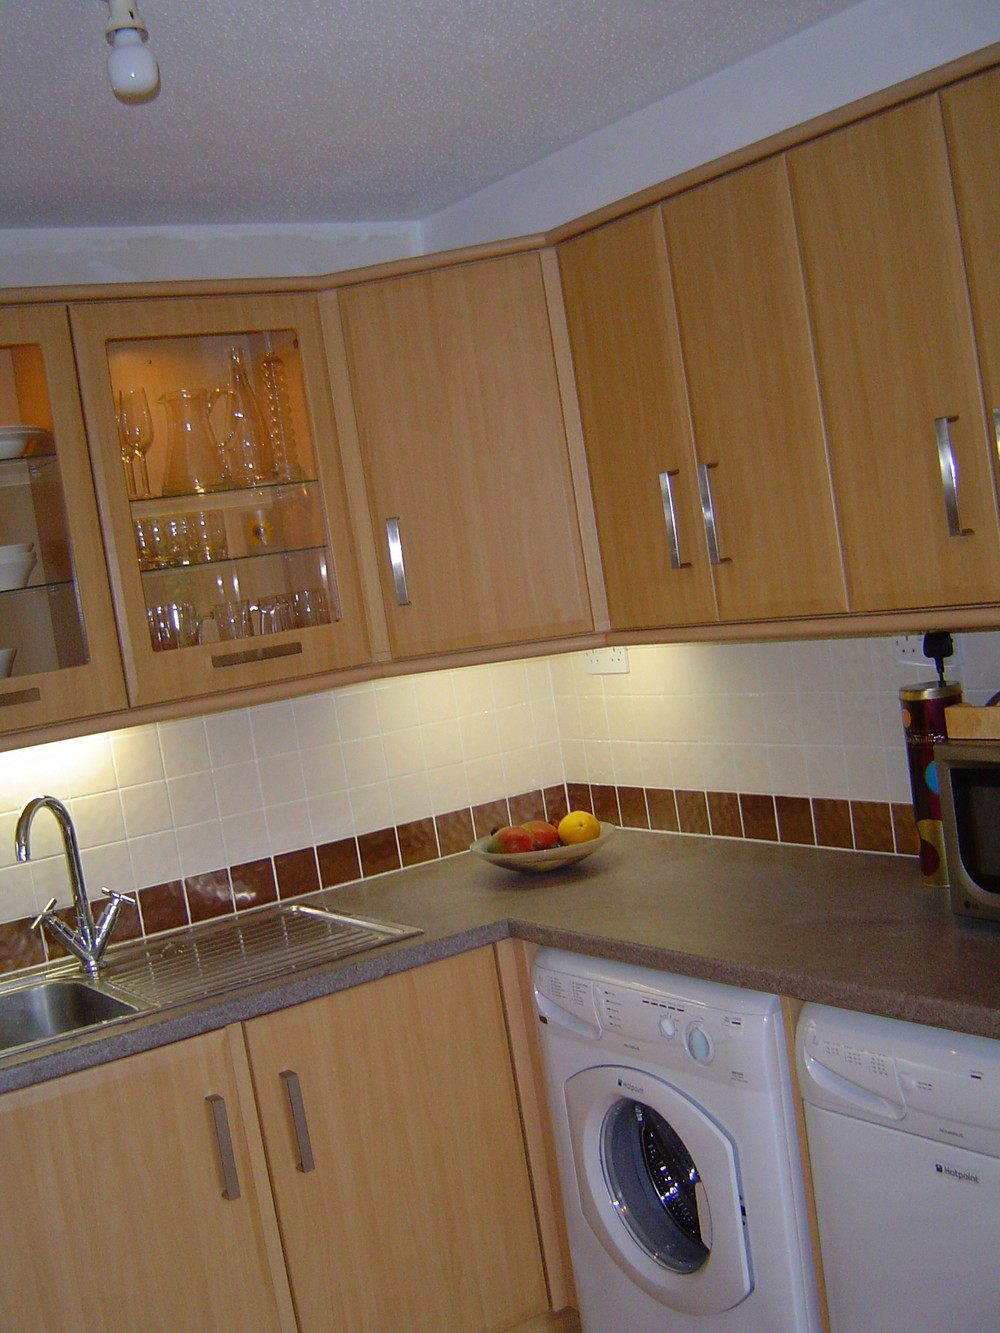 Replacement kitchen cupboard doors and 28 images for Replacement kitchen doors